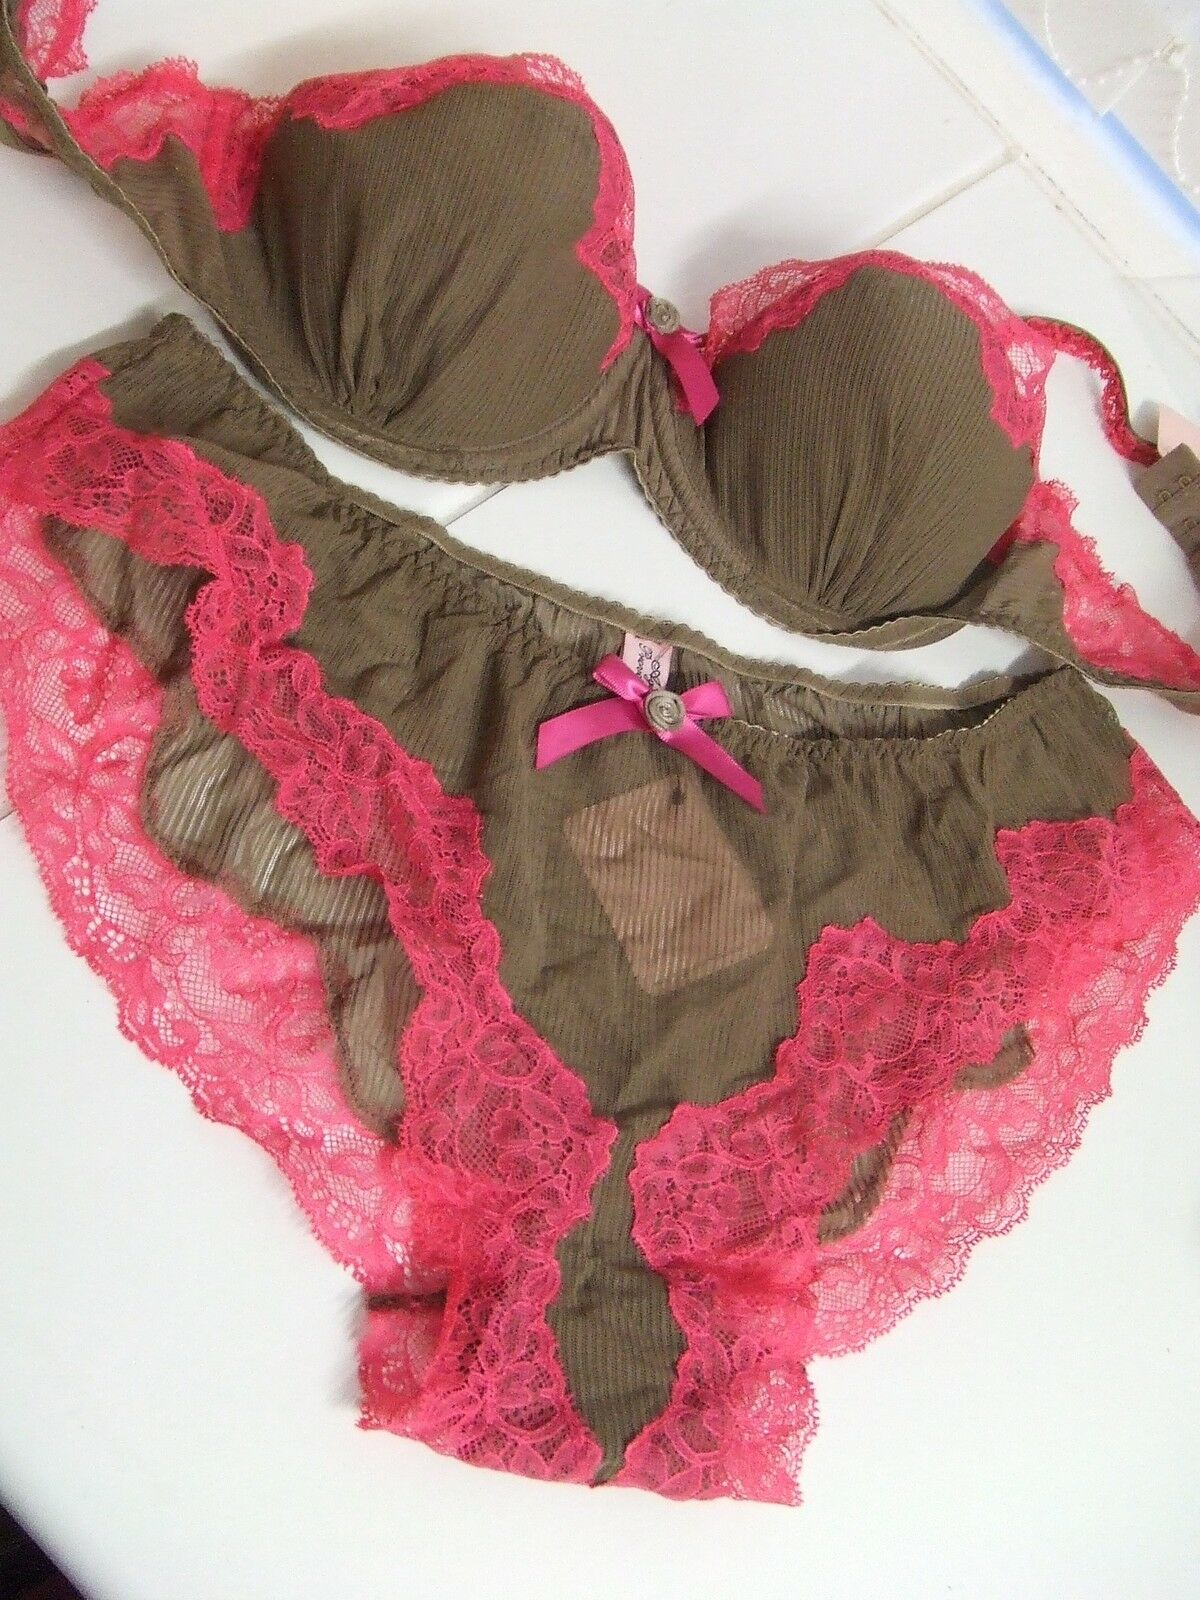 AGENT PROVOCATEUR CARAMBA CHOCOLATE BRA 36D & FRENCH KNIX SIZE LARGE UK12-14 NWT